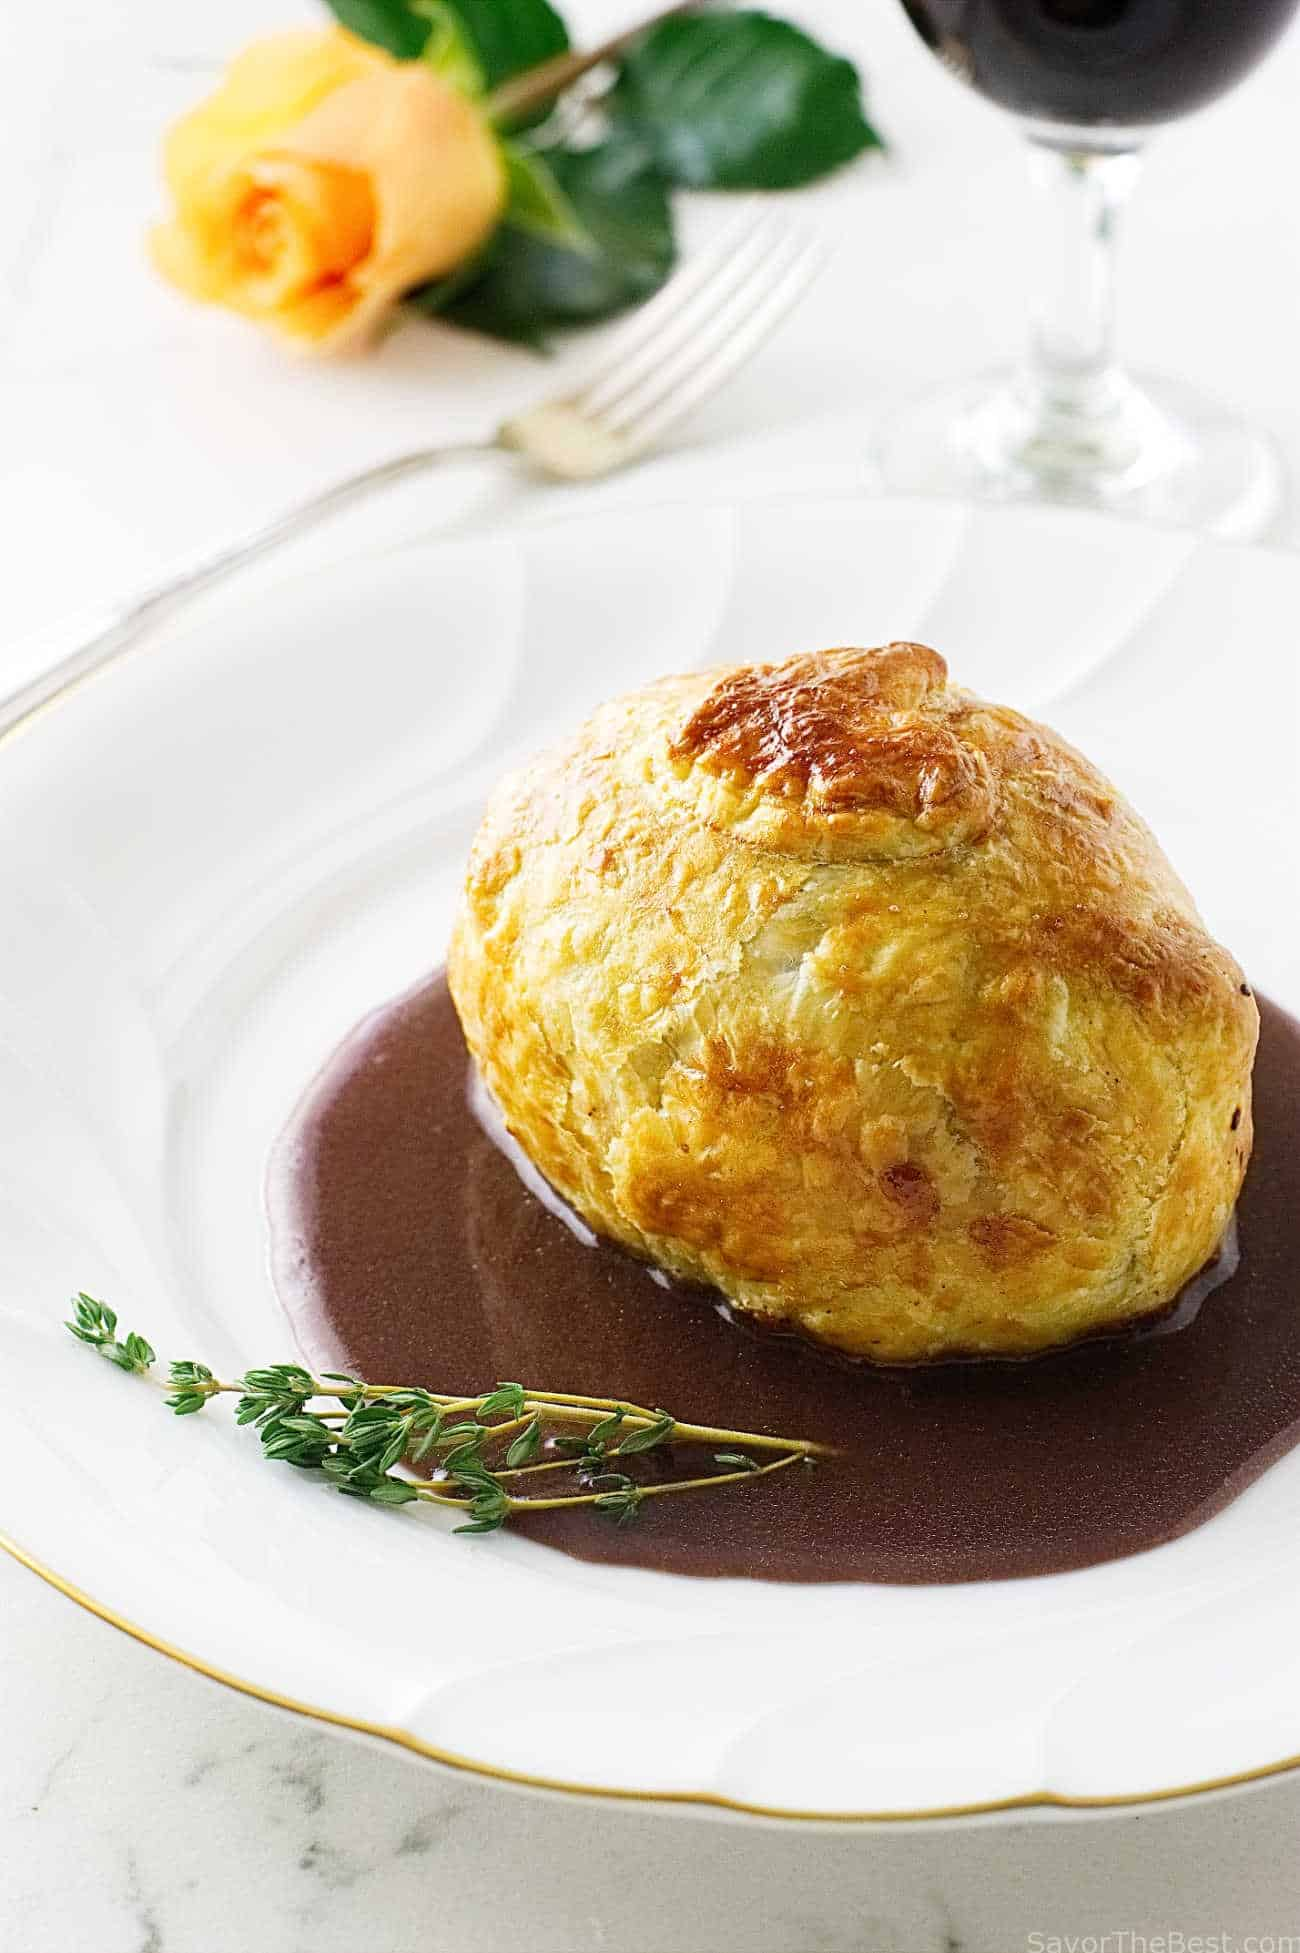 Mini Beef Wellingtons With Cabernet Sauce Savor The Best